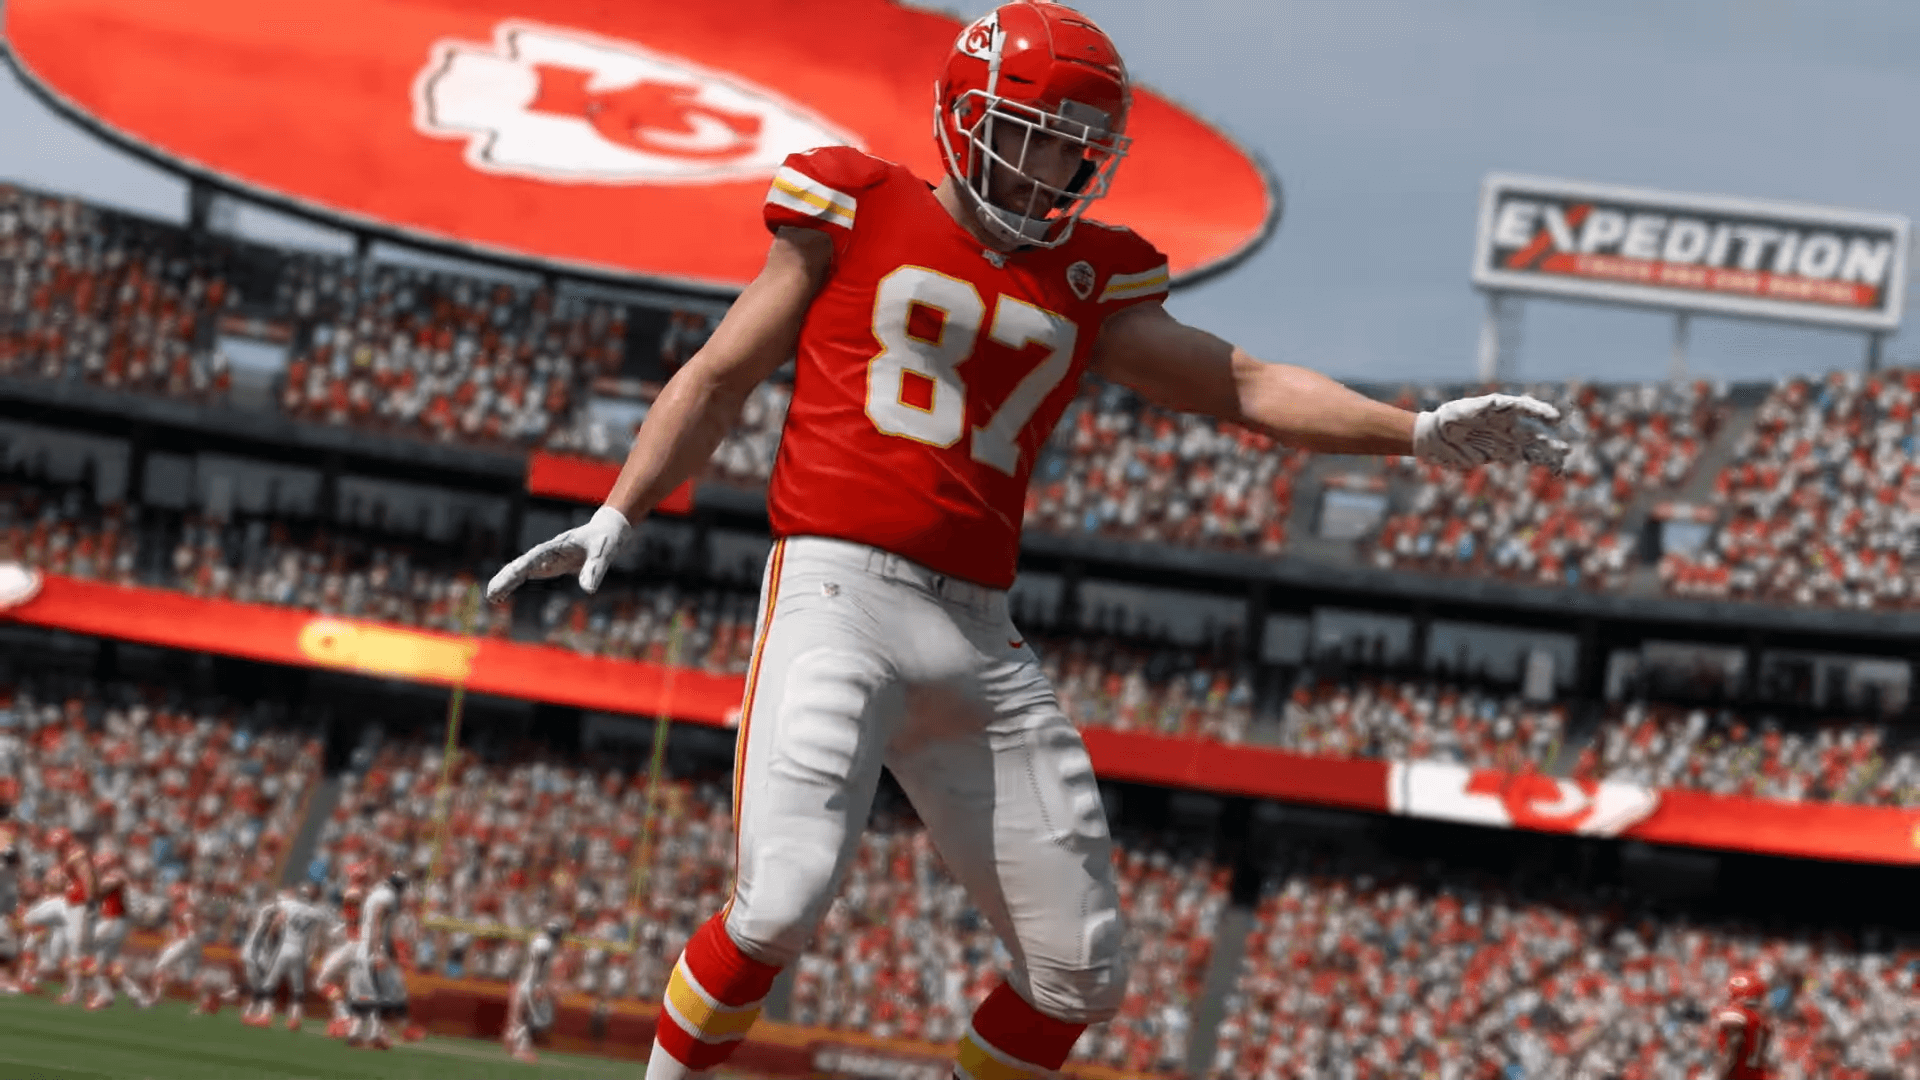 Madden NFL Contract Renewed by EA